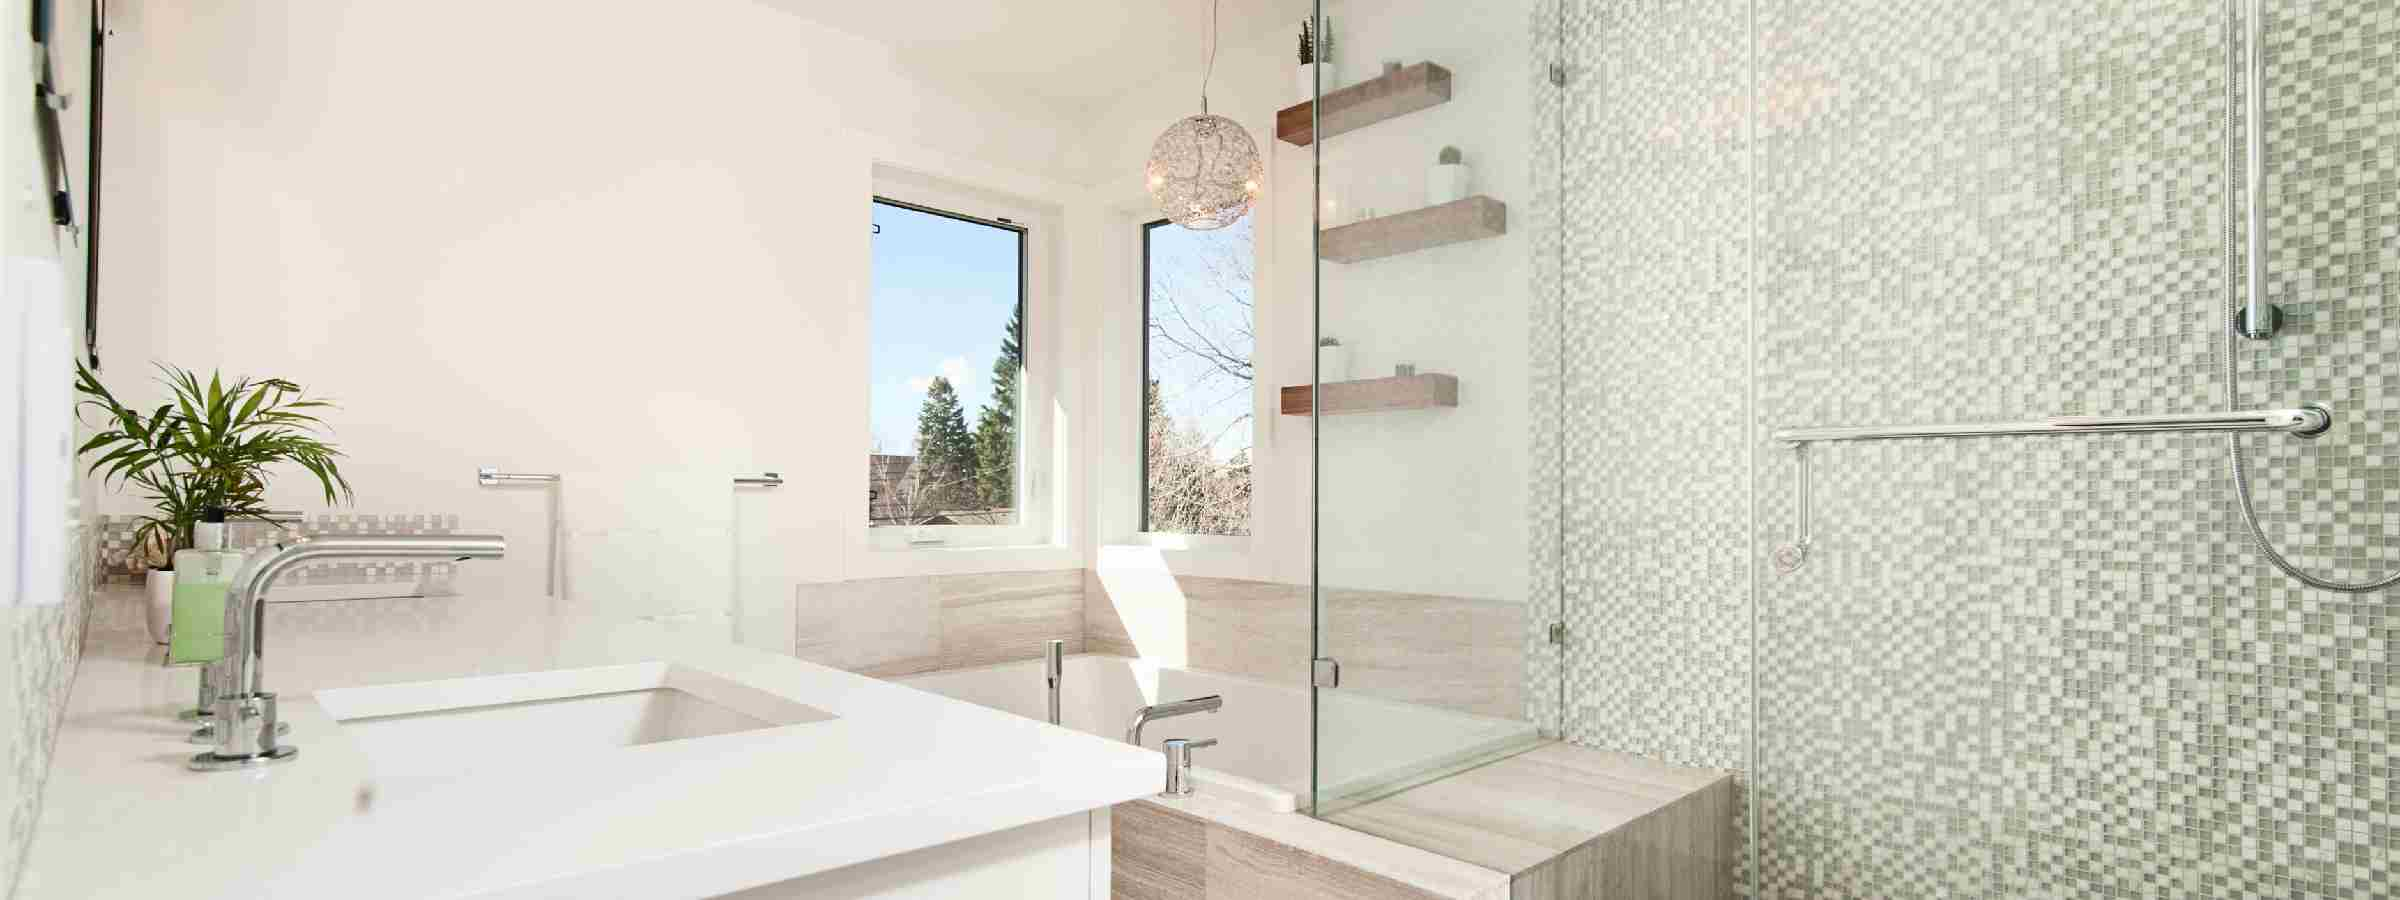 Bespoke bathroom design and installation